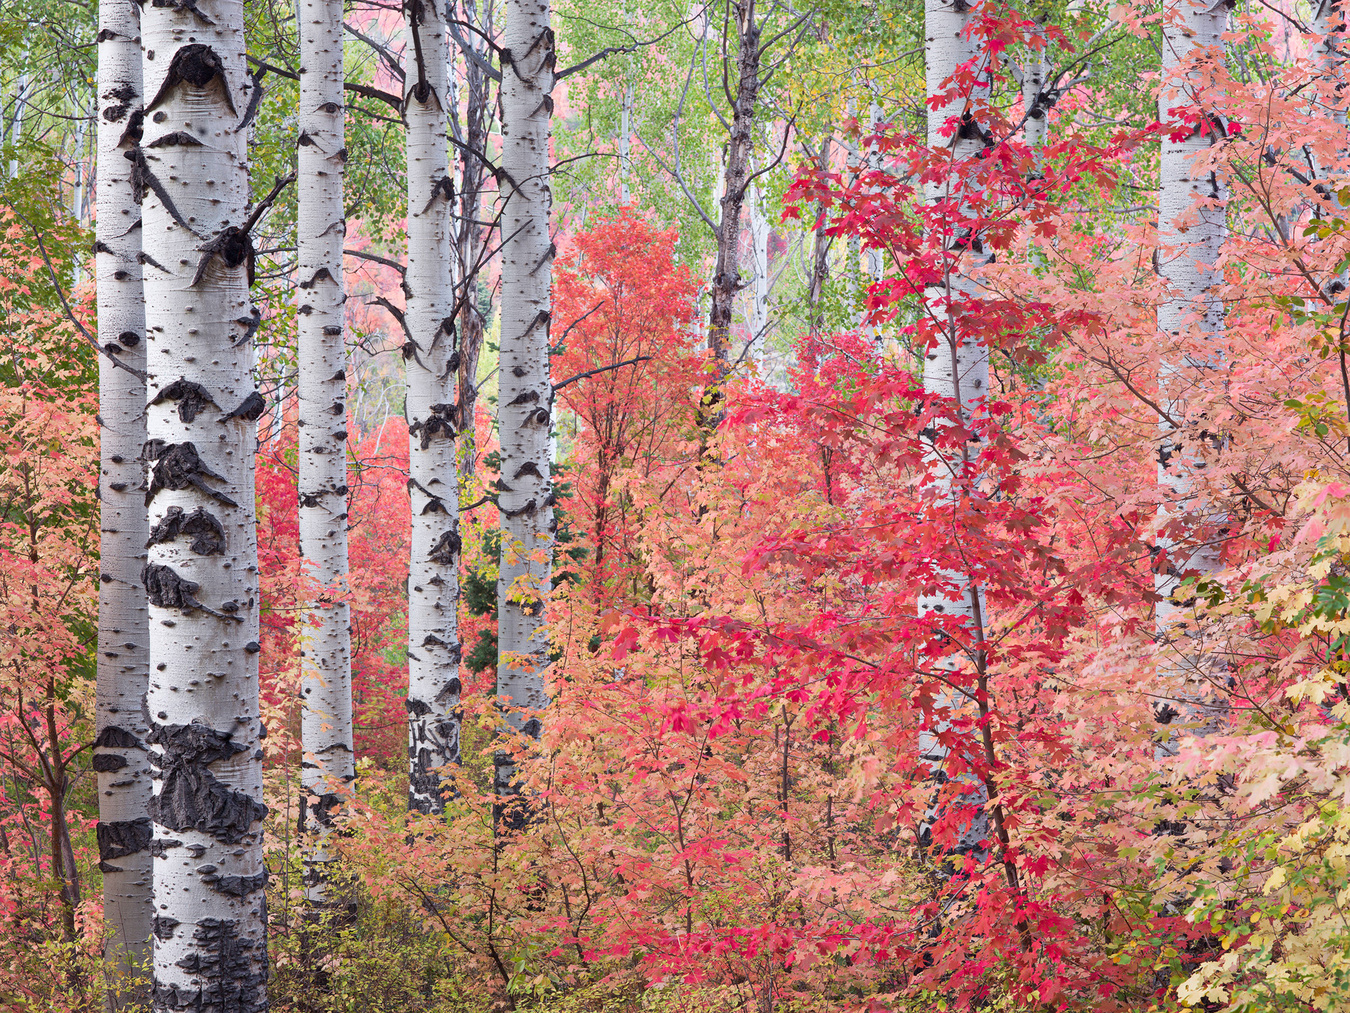 Glowing Red Maple and Aspens